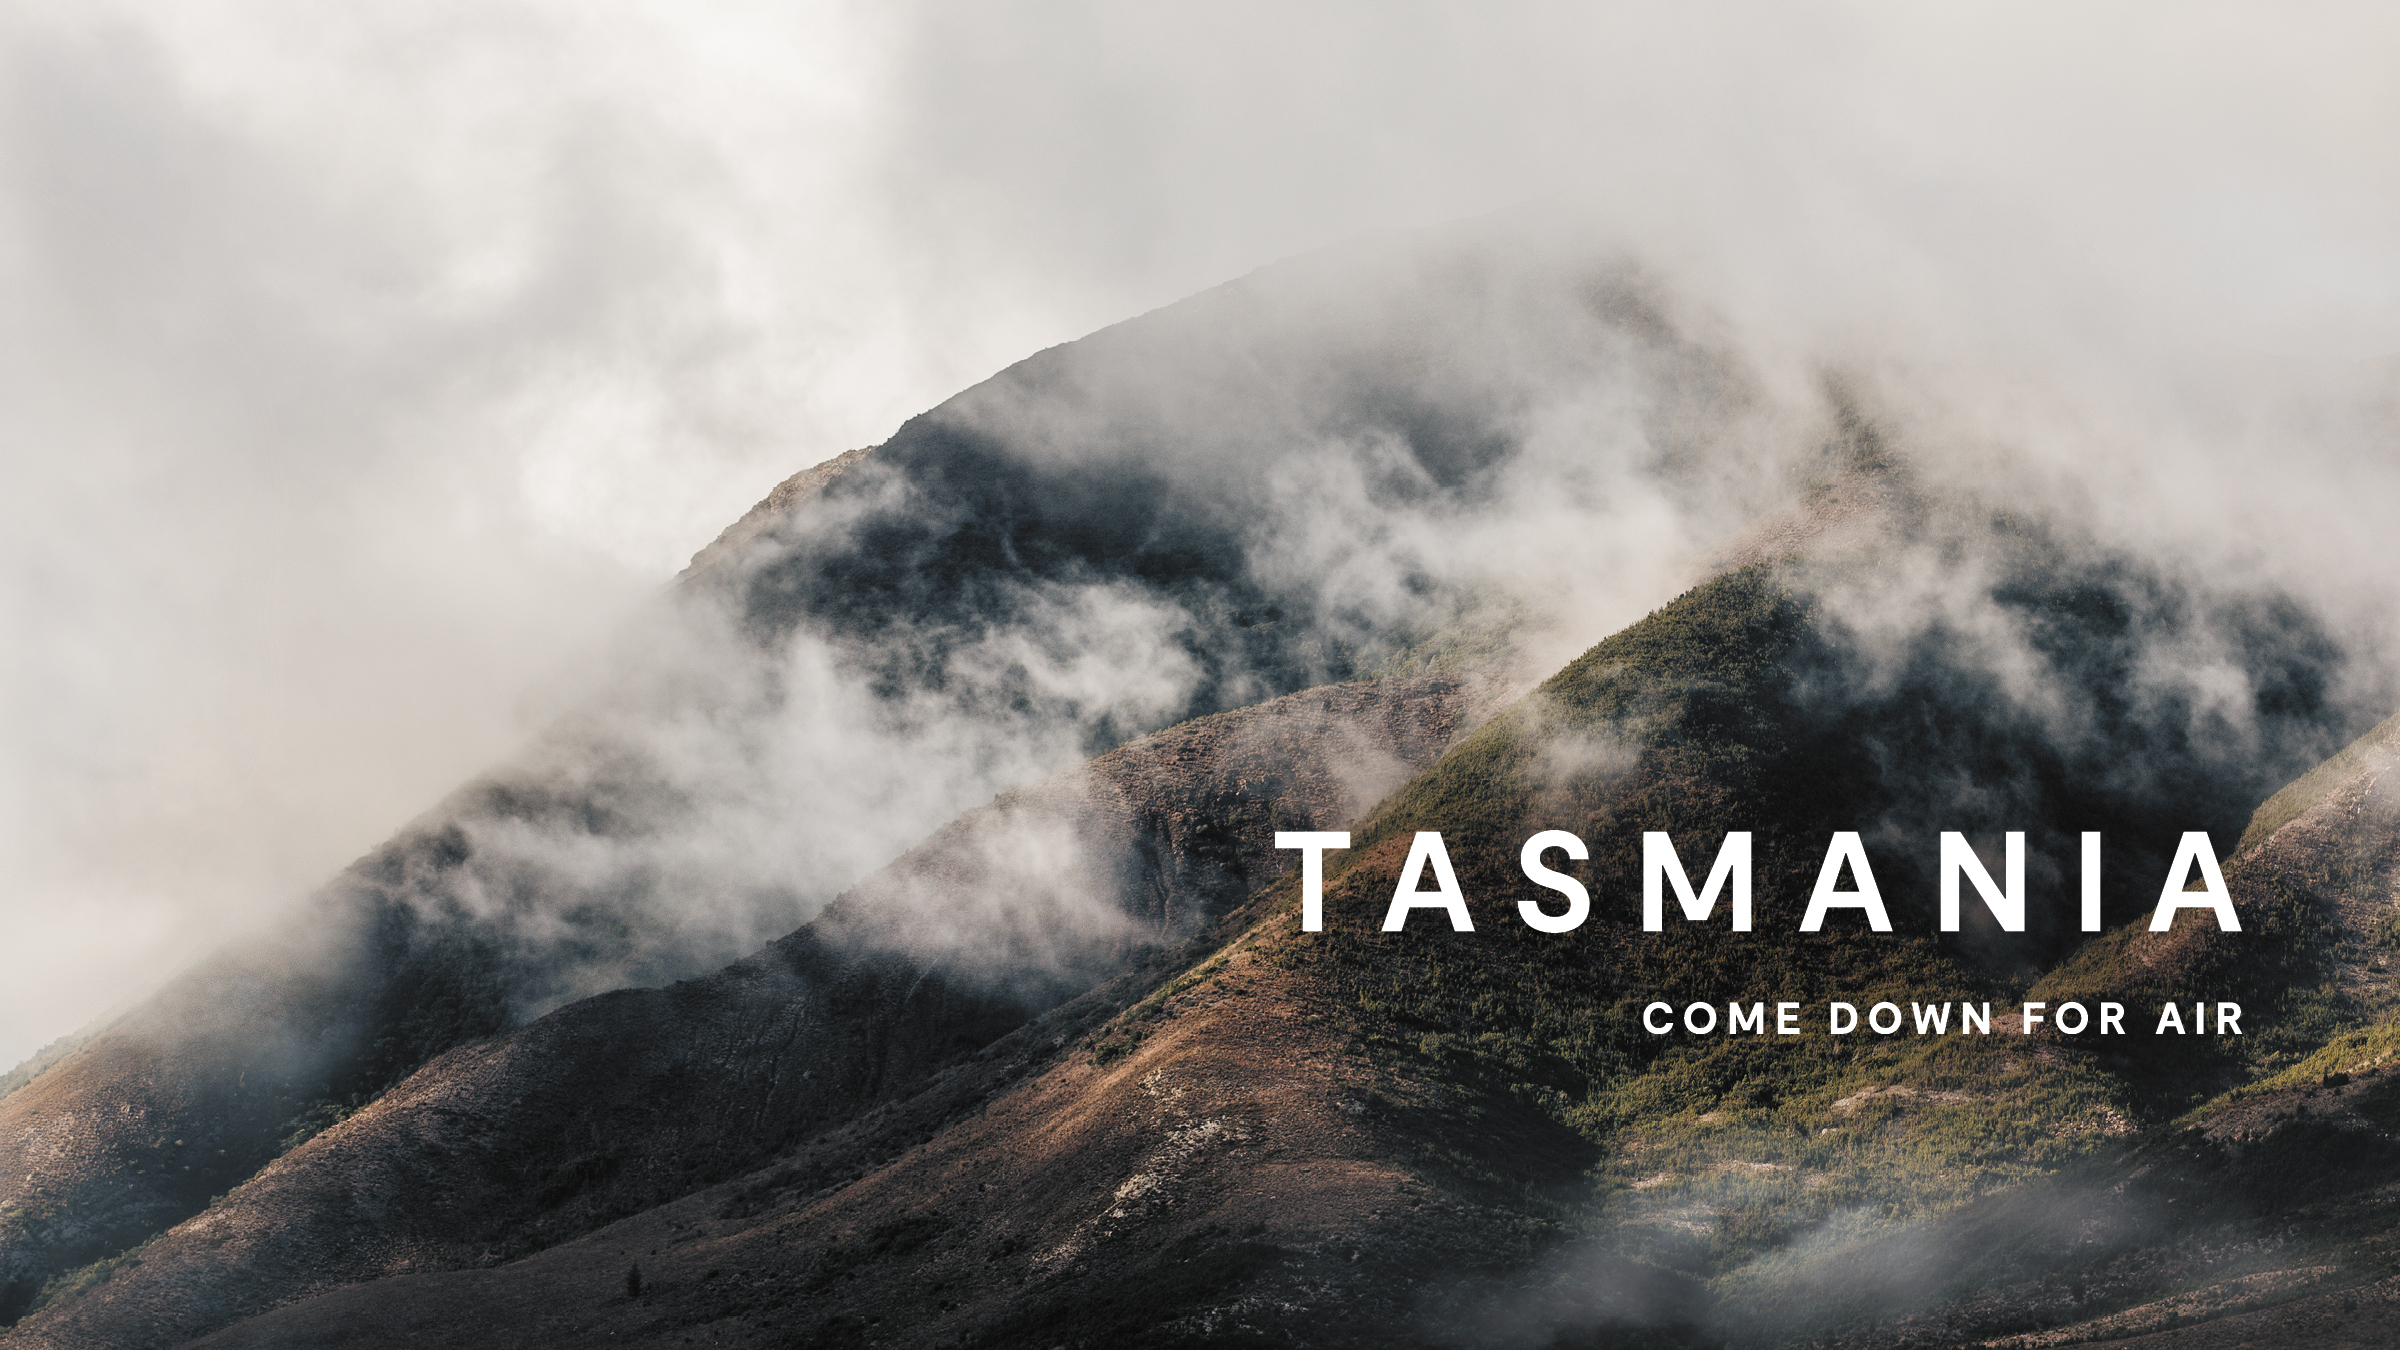 Tourism Tasmania invites Aussies to 'come down for air' in new campaign via BMF + Clems Sydney